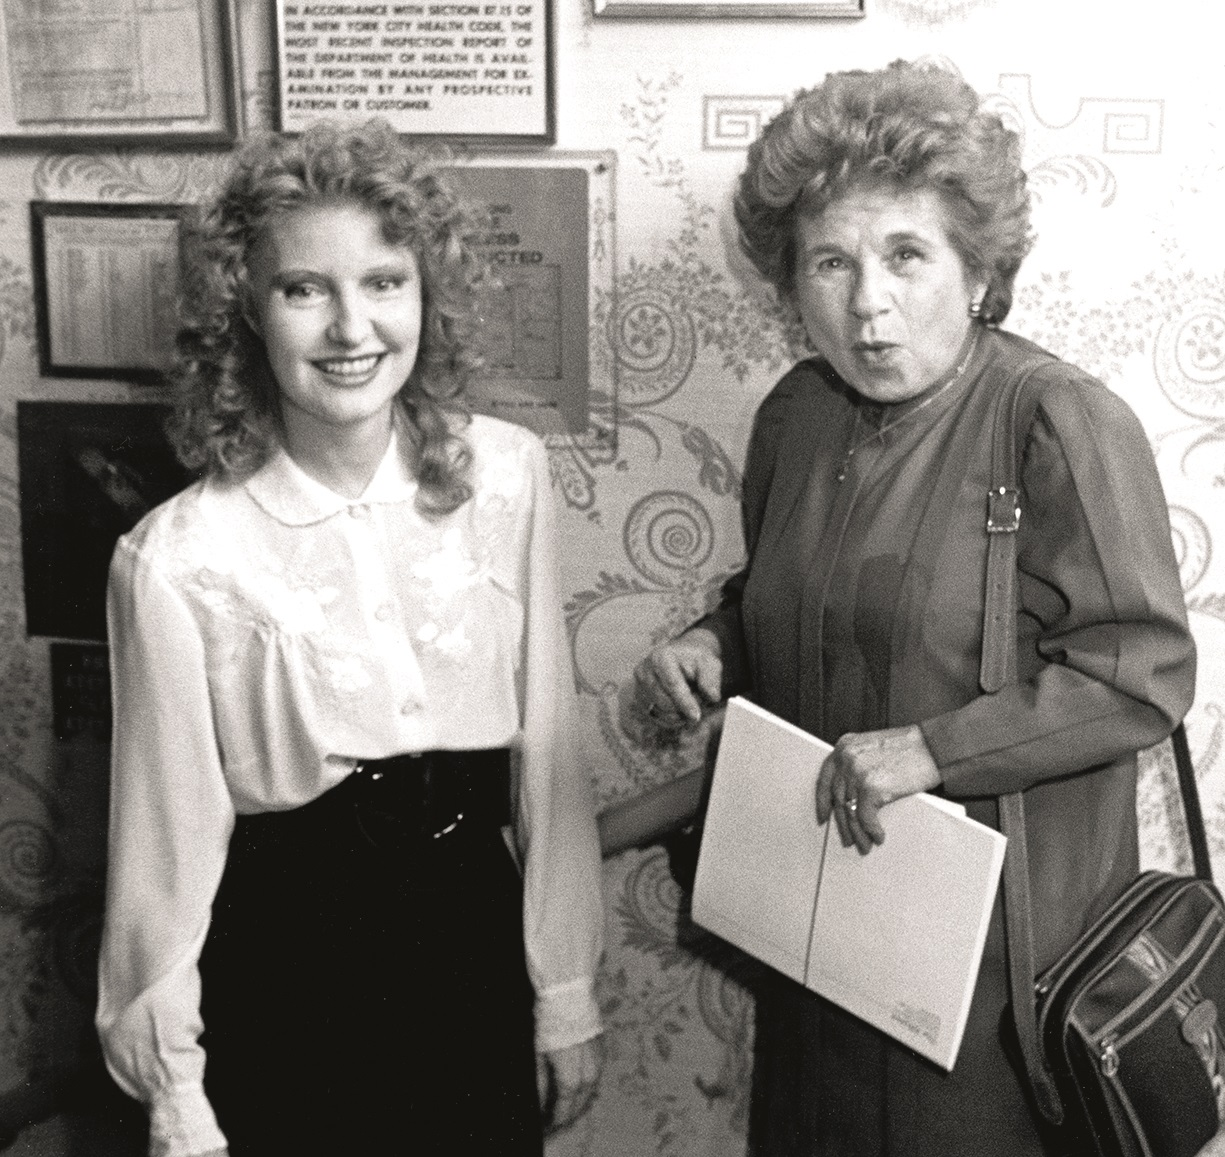 Shere Hite and Dr. Ruth Westheimer (Photo by Ron Galella/Ron Galella Collection via Getty Images)